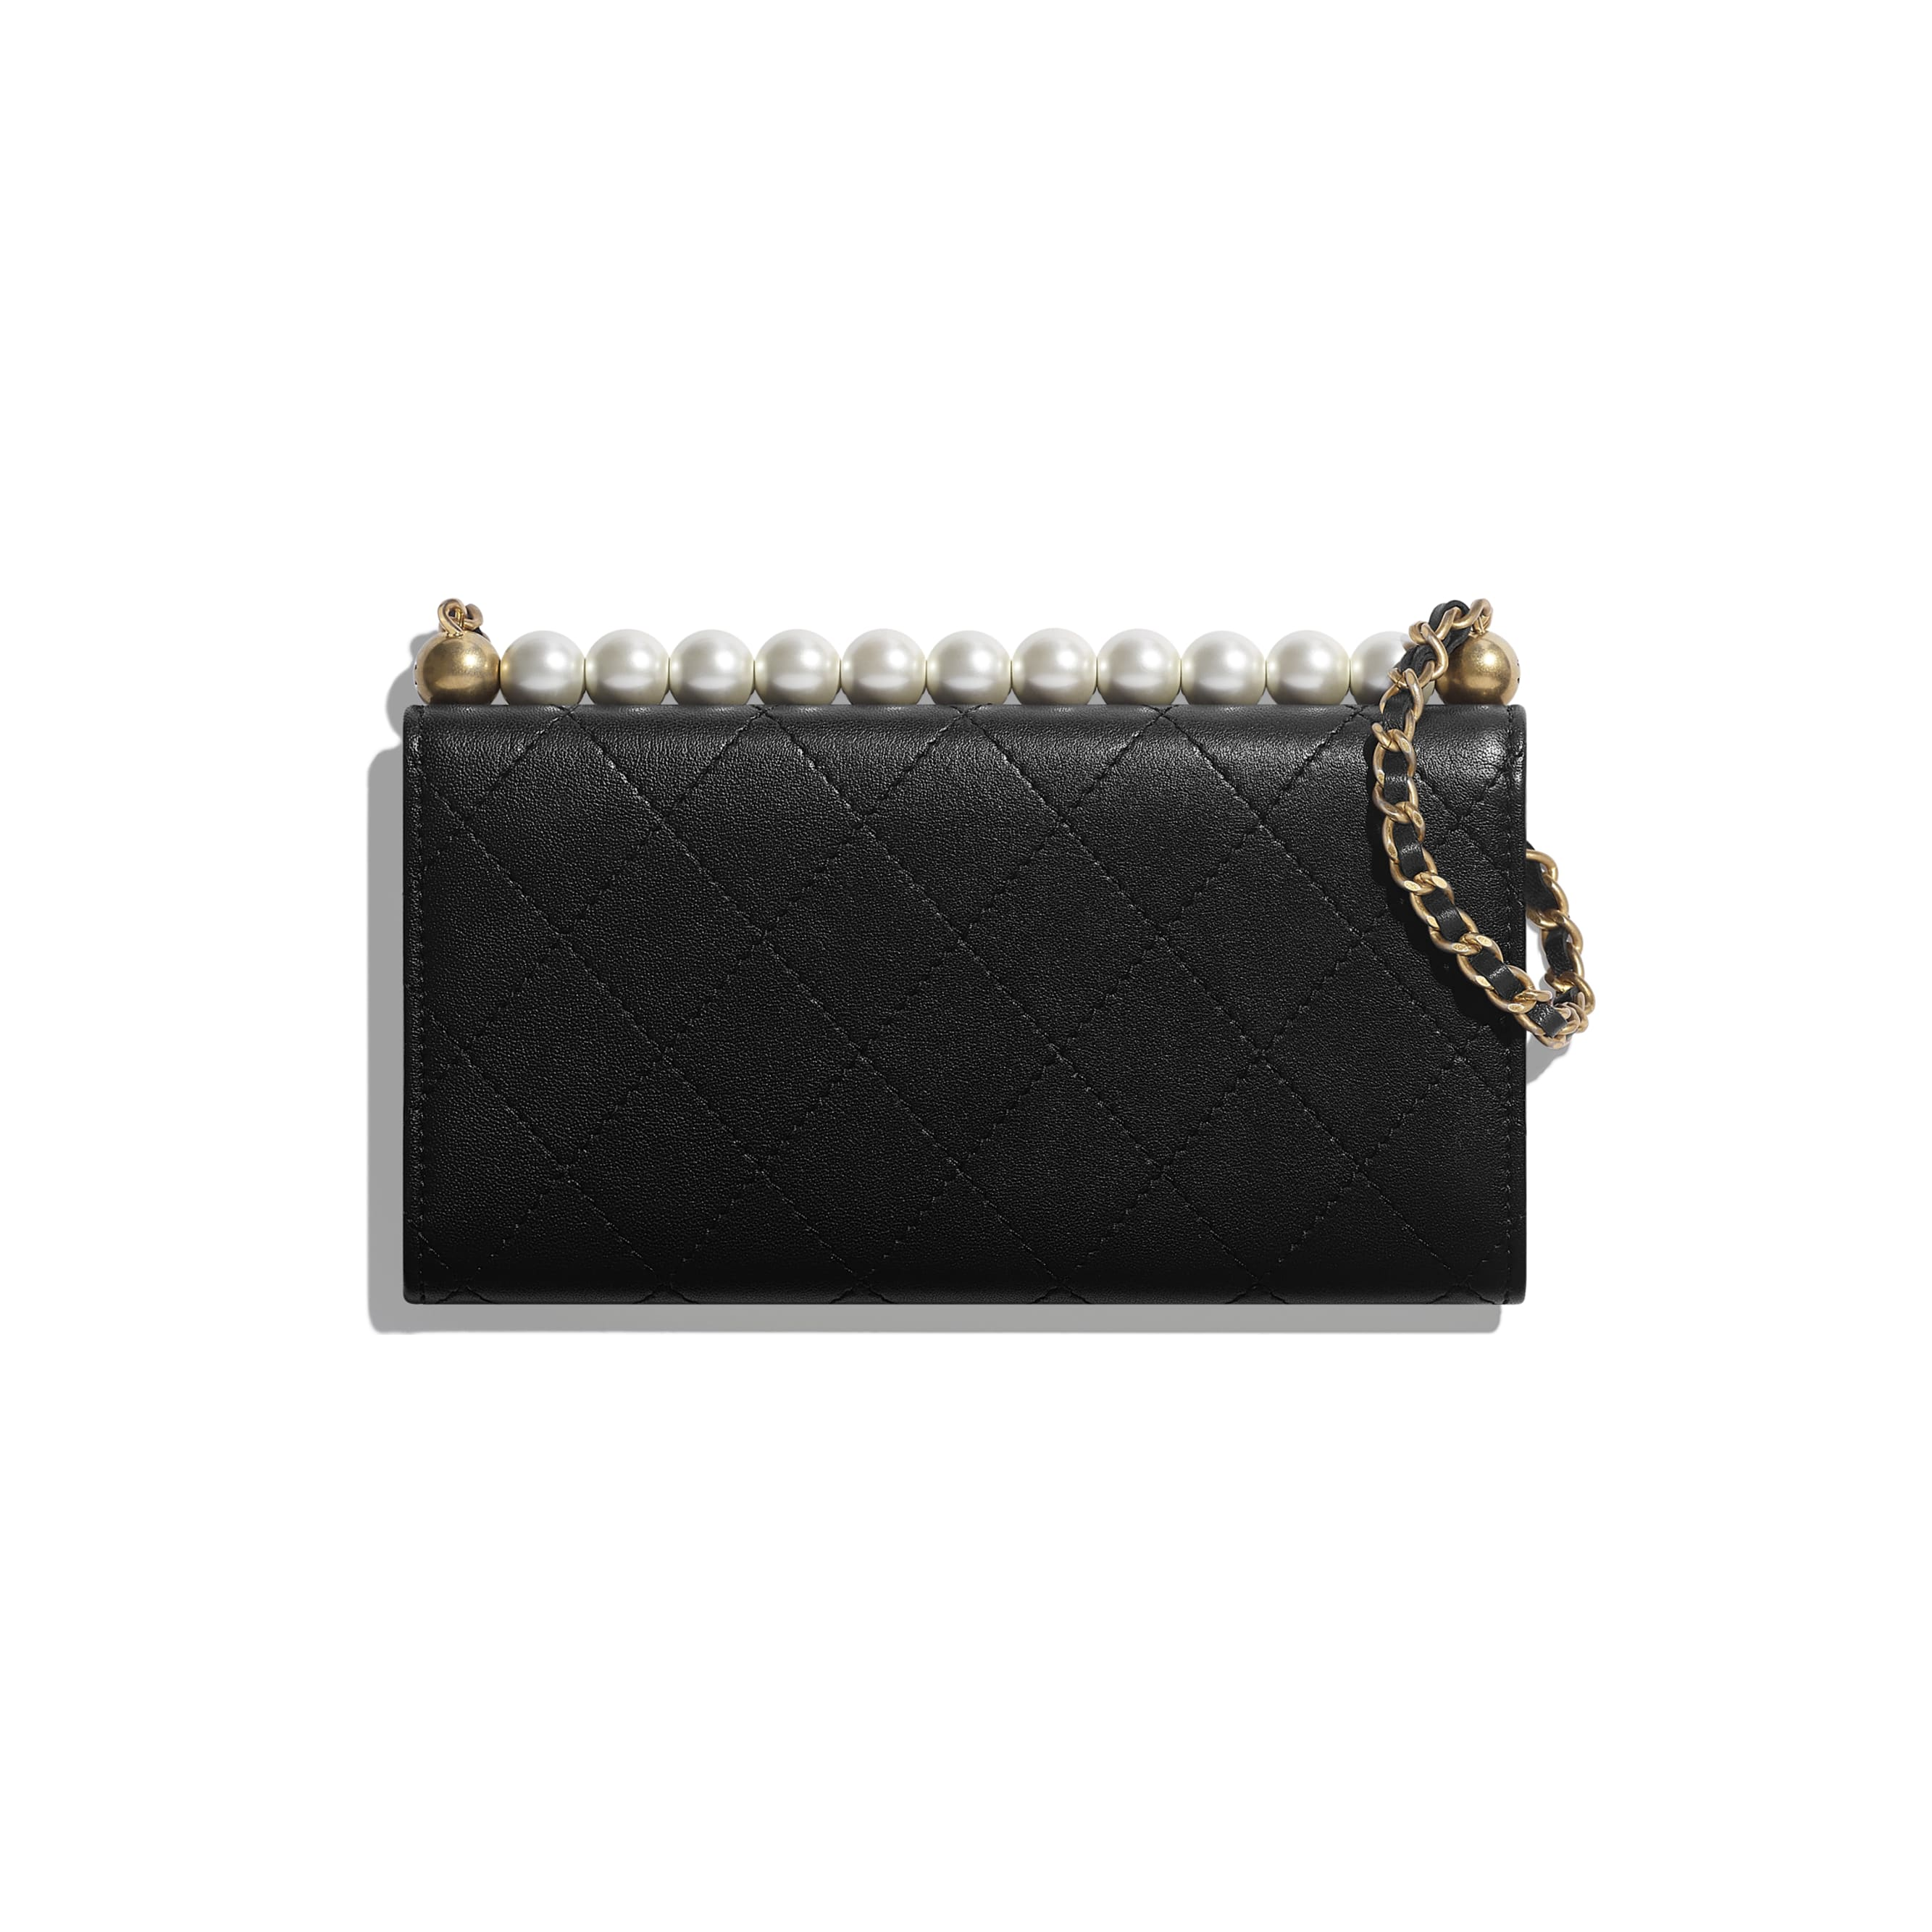 Clutch with Chain - Black - Goatskin, Imitation Pearls & Gold-Tone Metal - CHANEL - Alternative view - see standard sized version